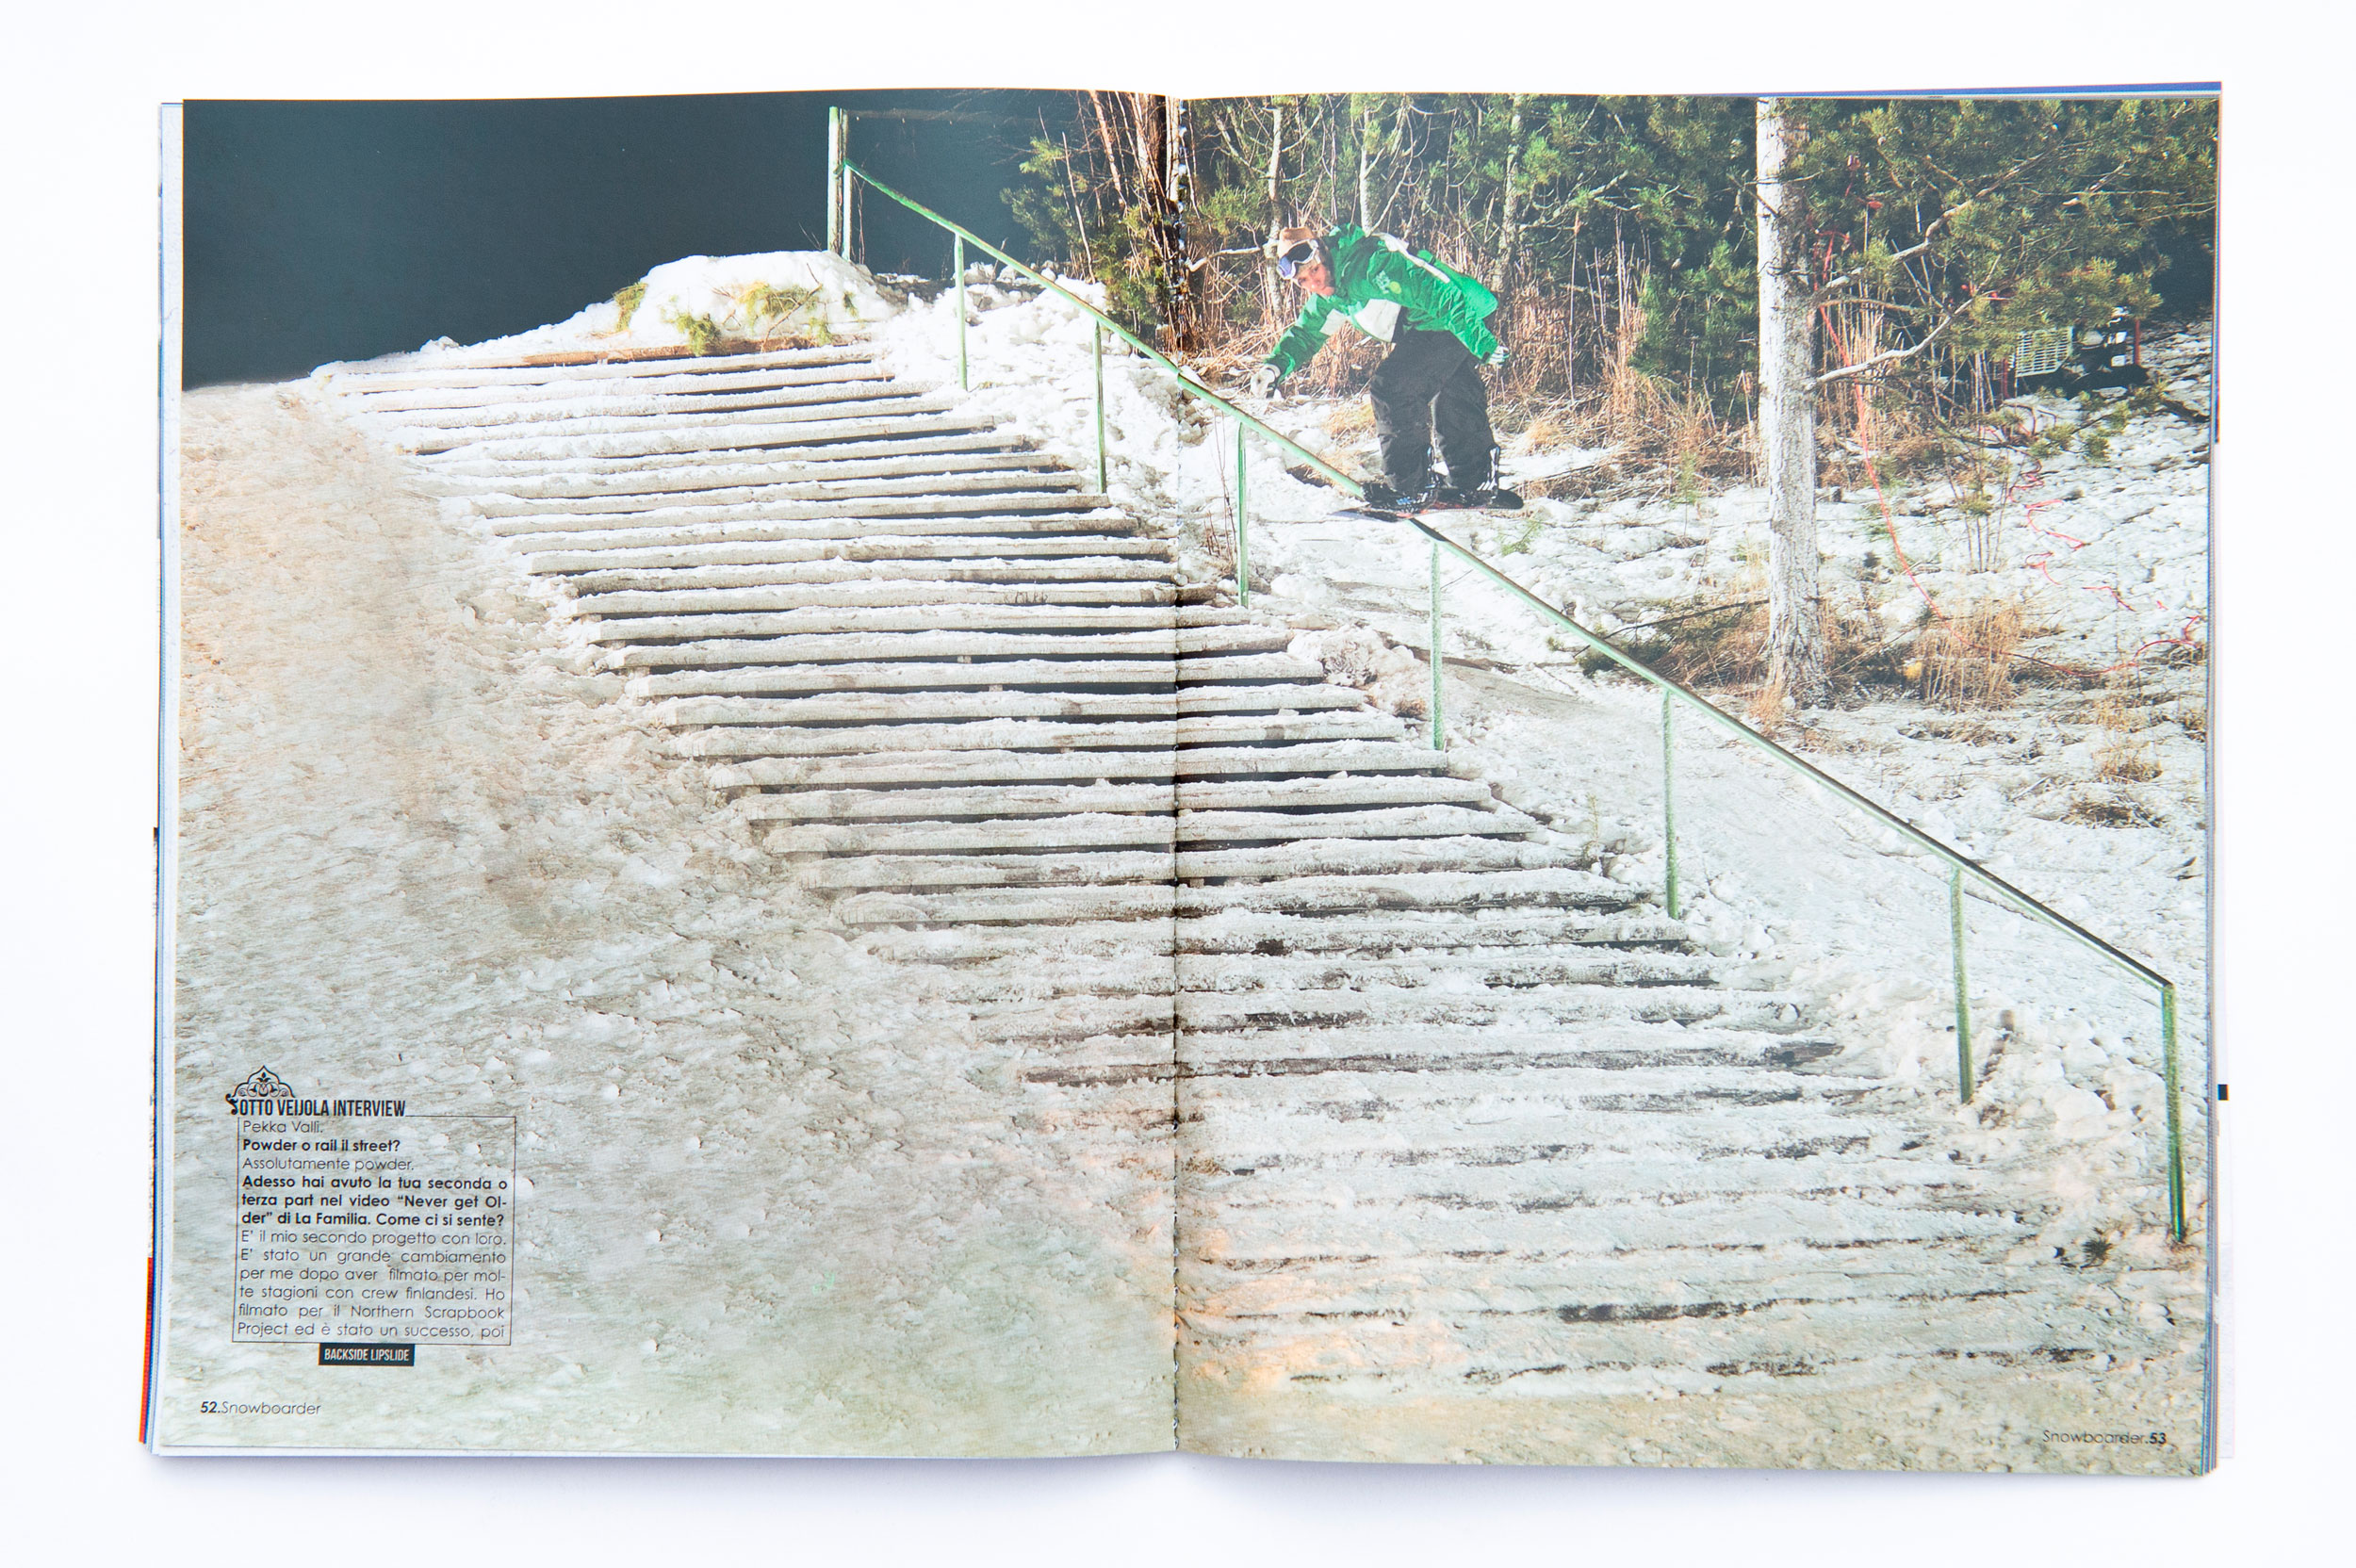 Otto Veijola, Editorial, Snowboardermagazin, Willi Nothers, Referenz